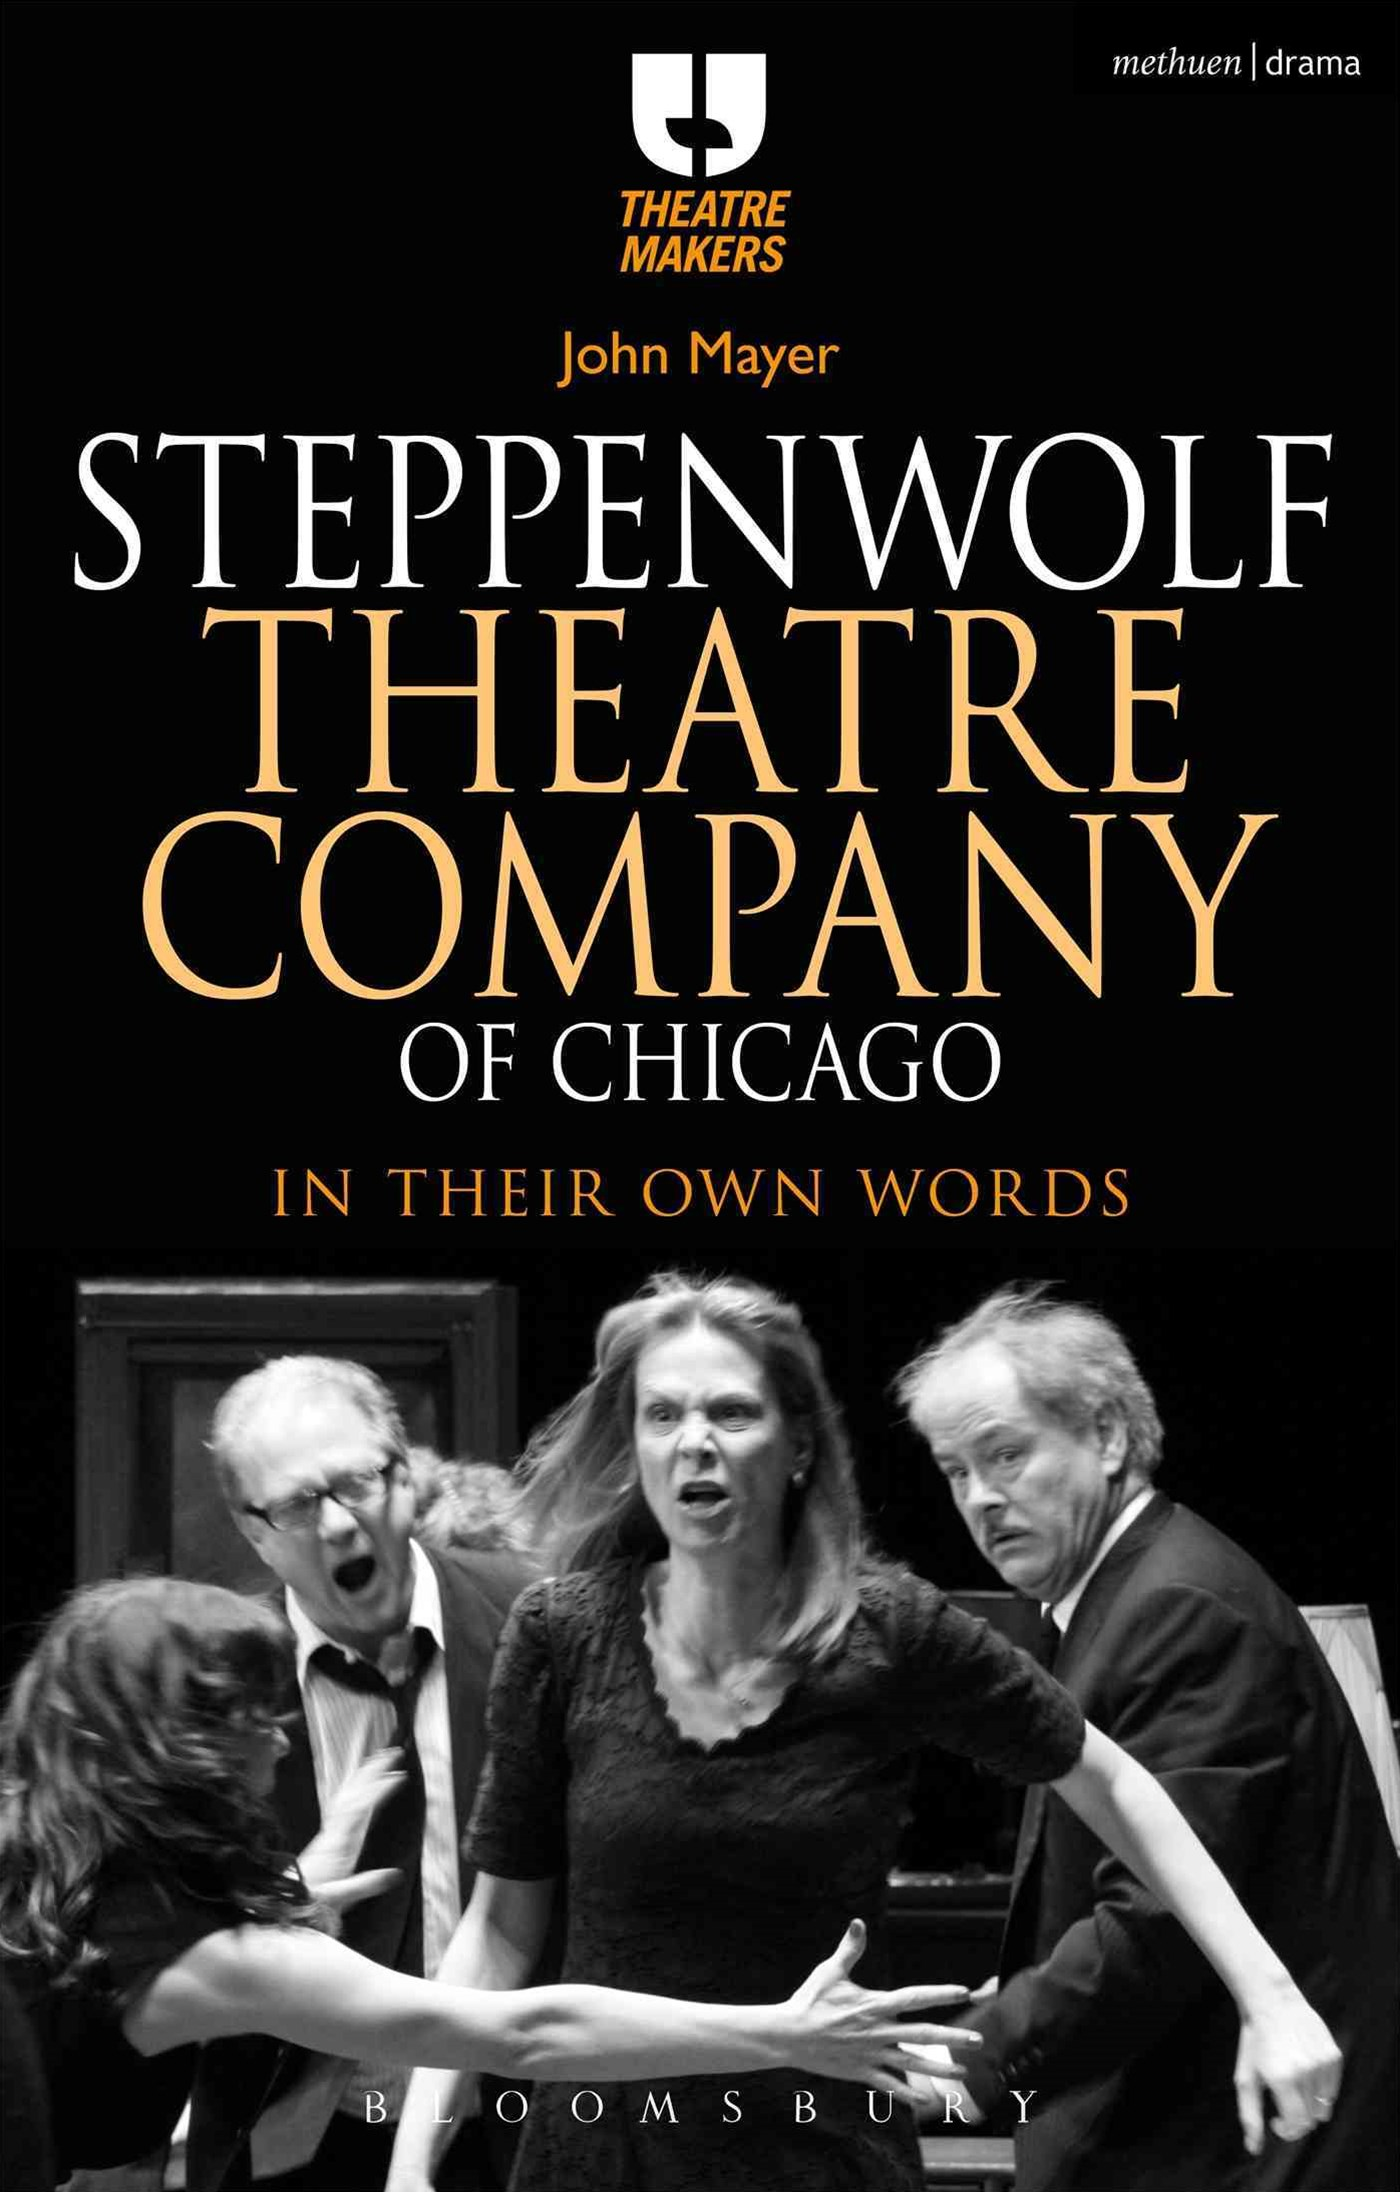 Steppenwolf Theatre Company of Chicago